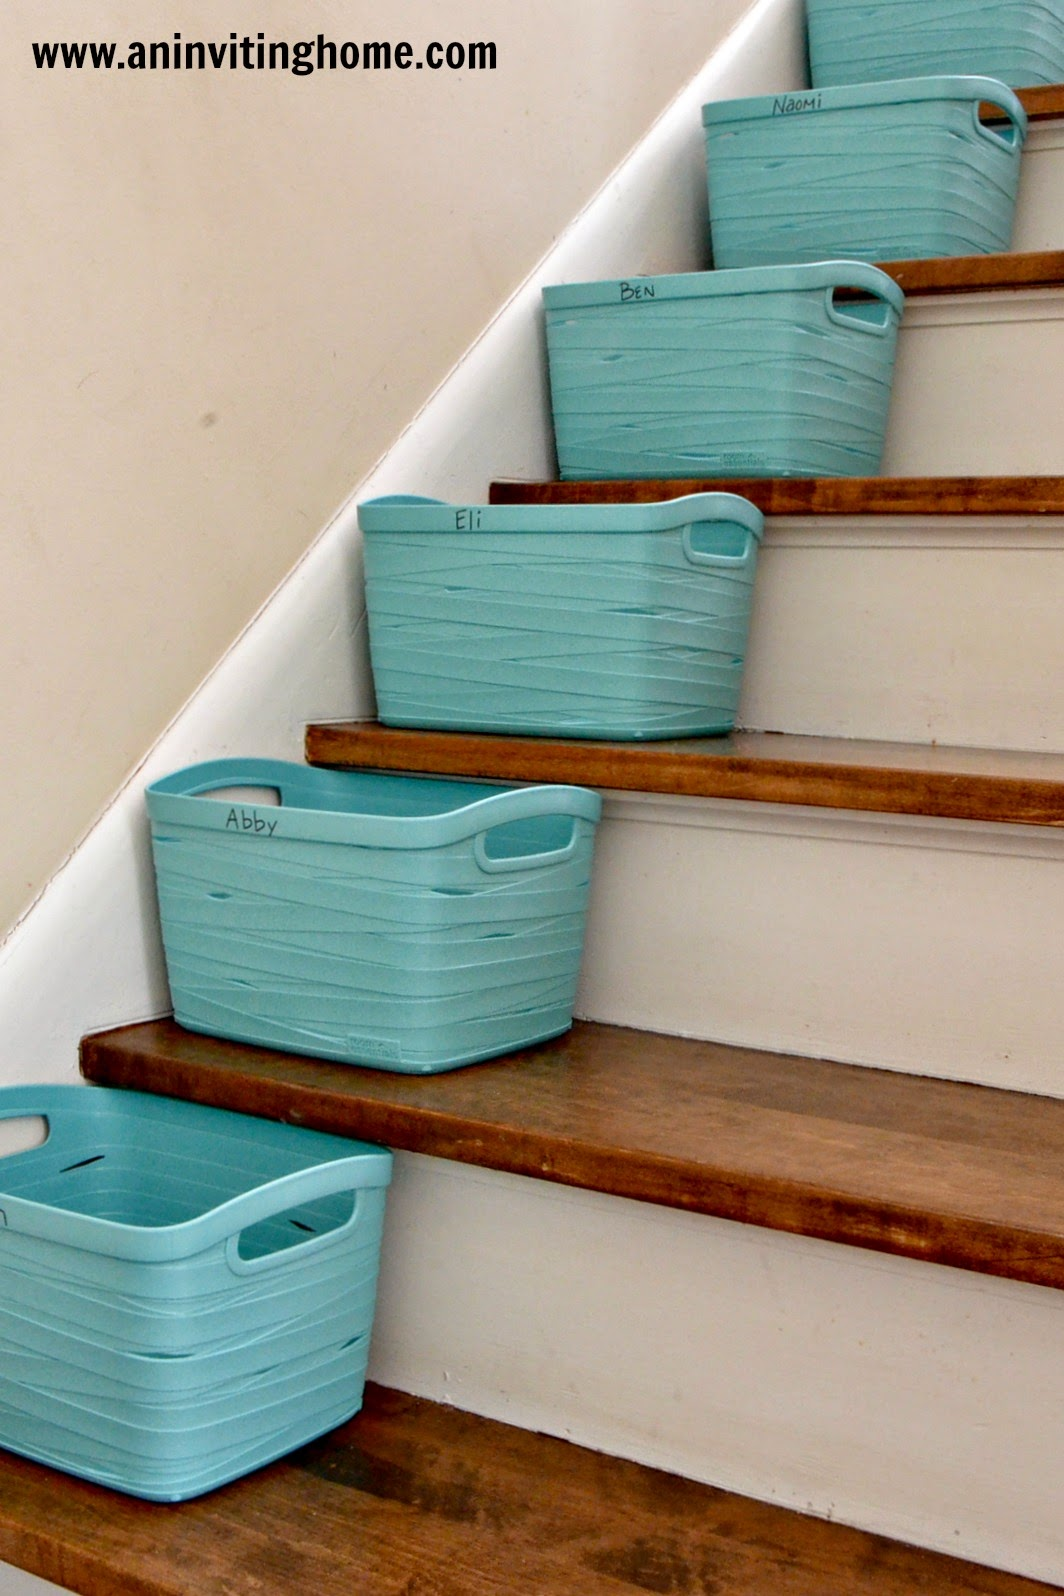 bins on your stairs to help organize